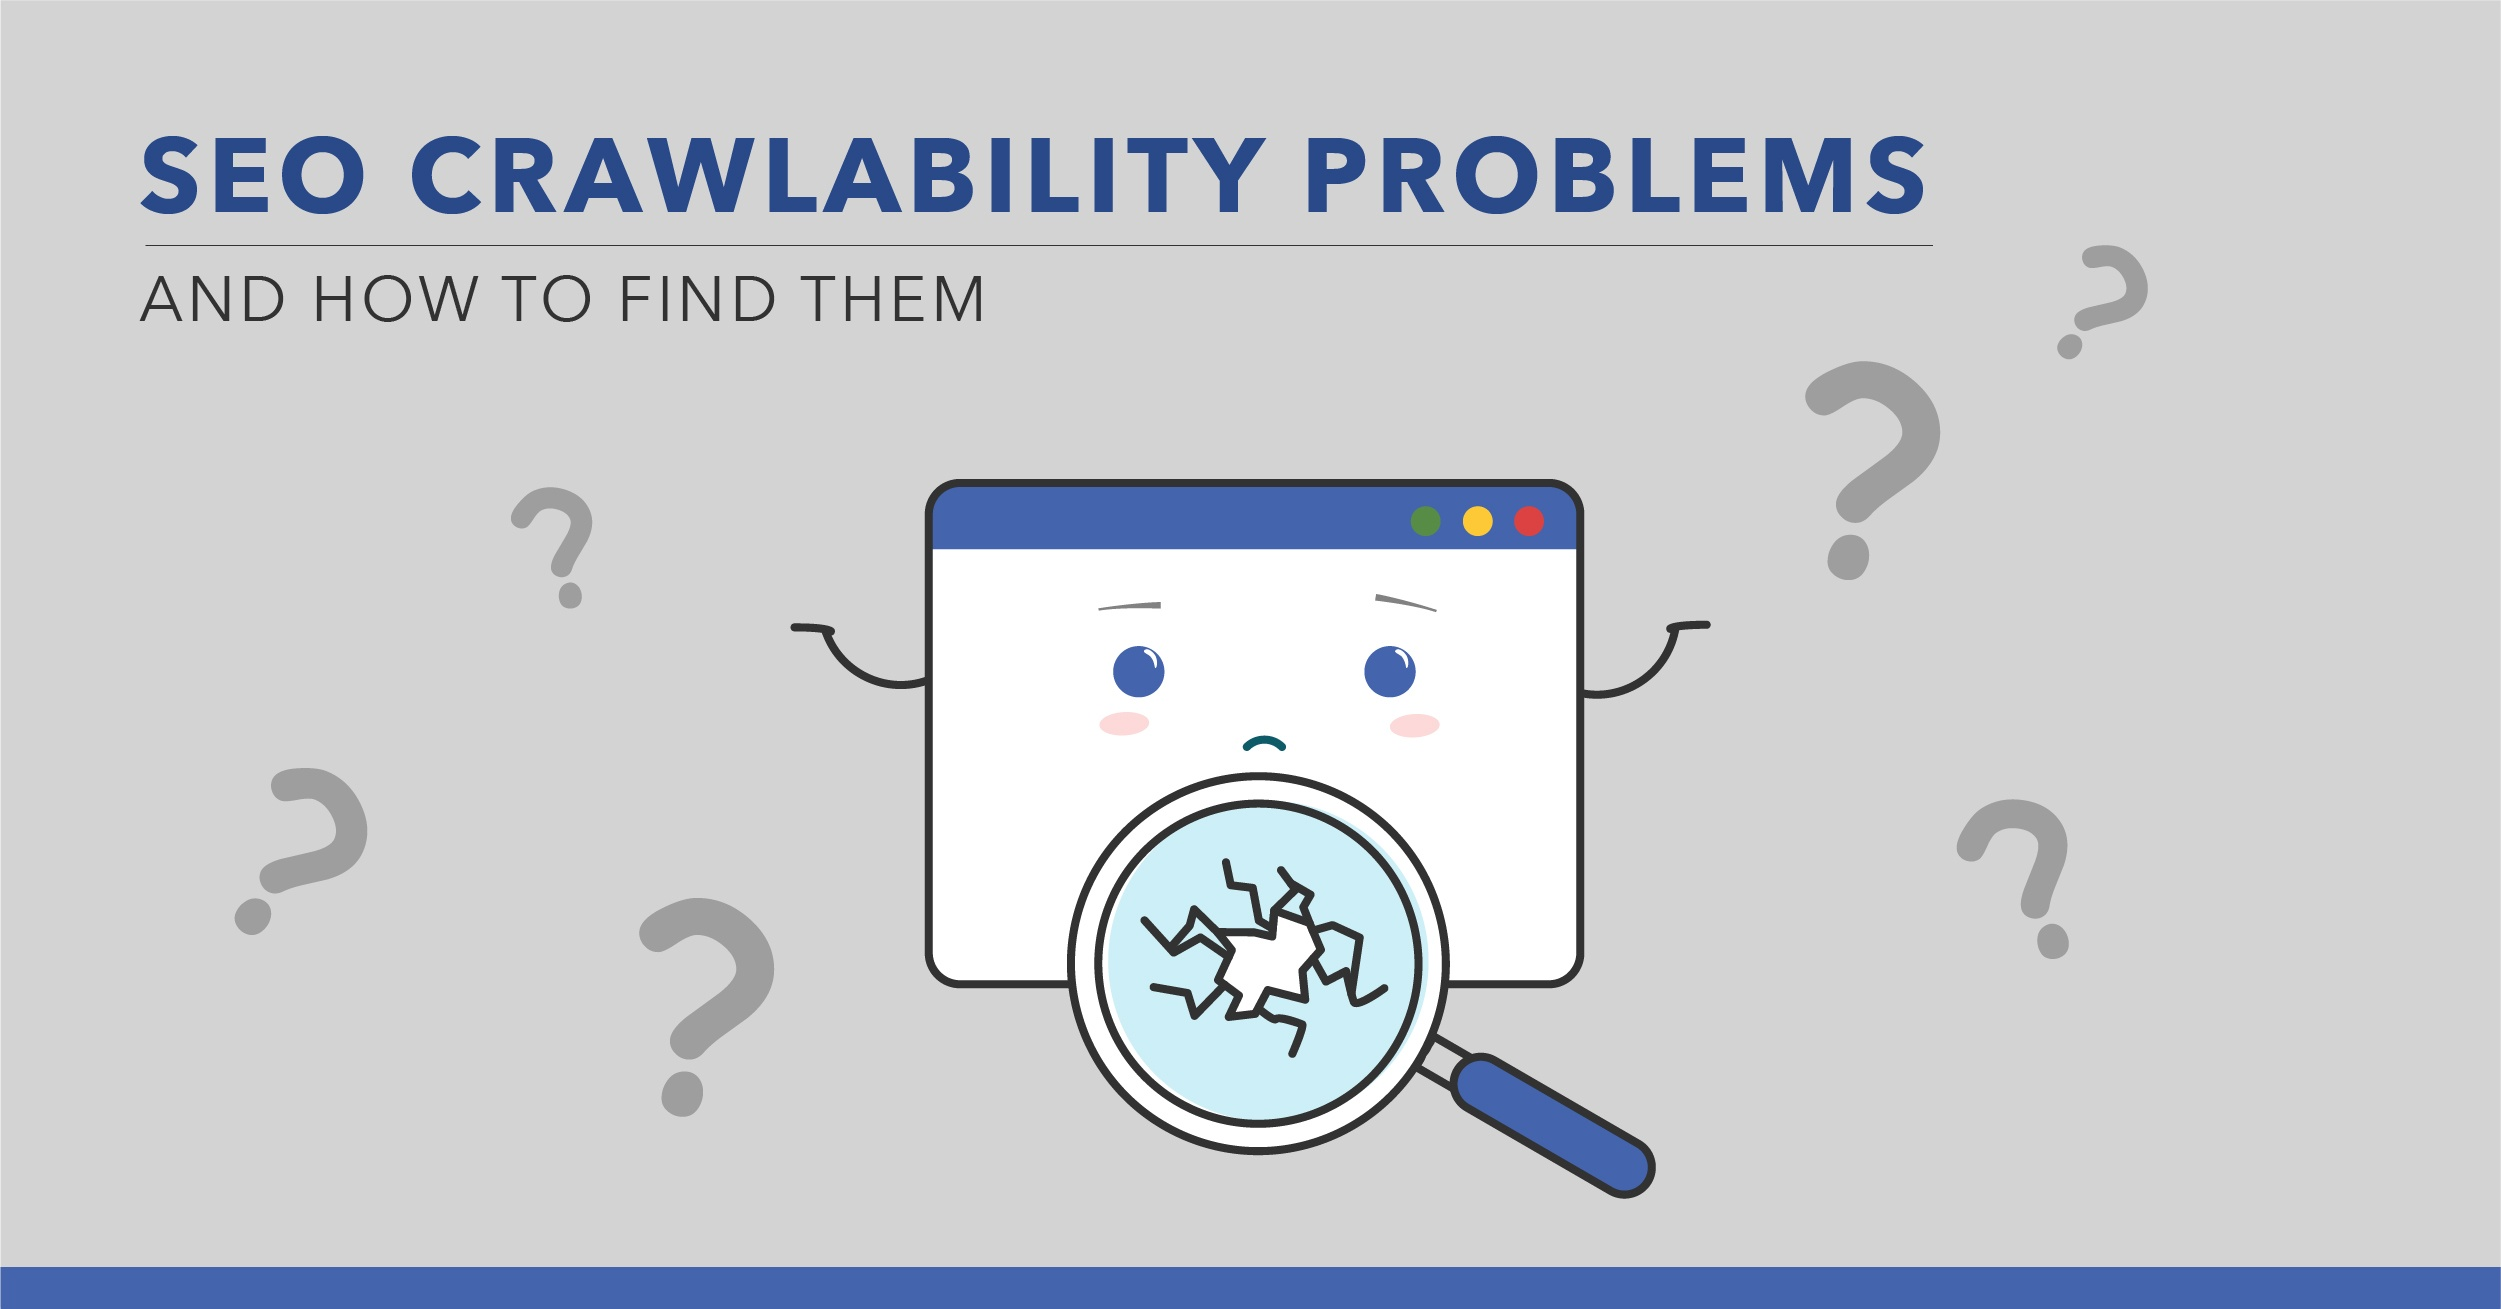 SEO Crawlability Problems and How to Find Them - Featured Image